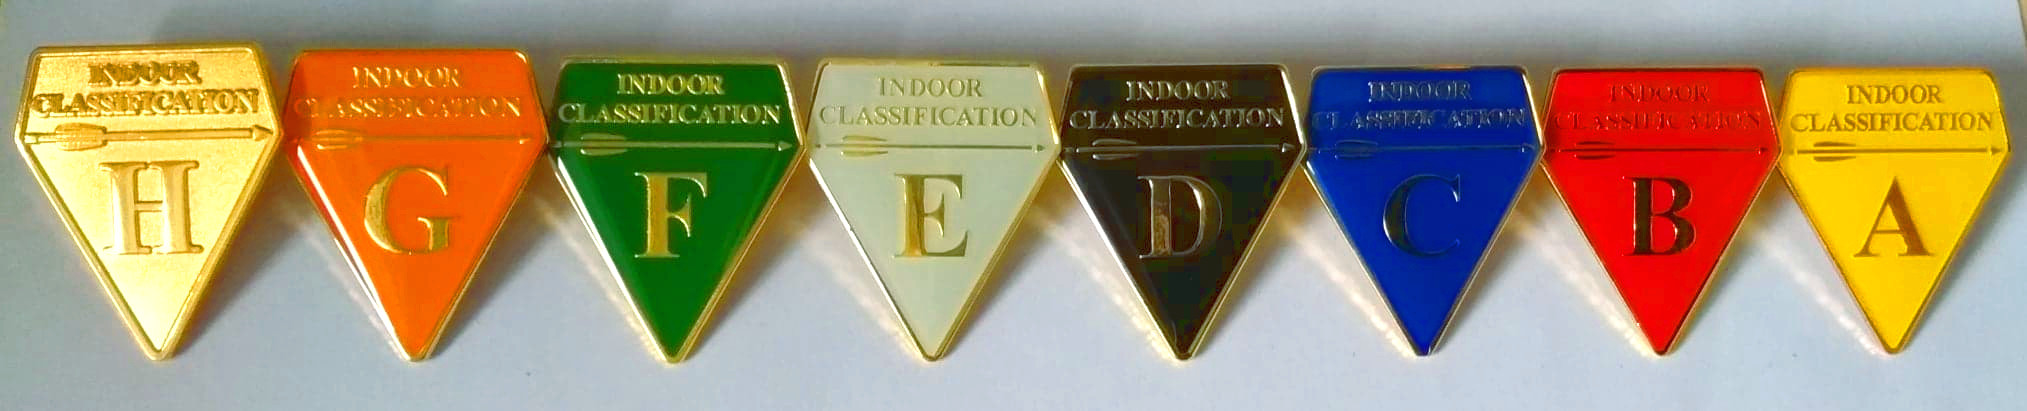 Indoor Classification Badges